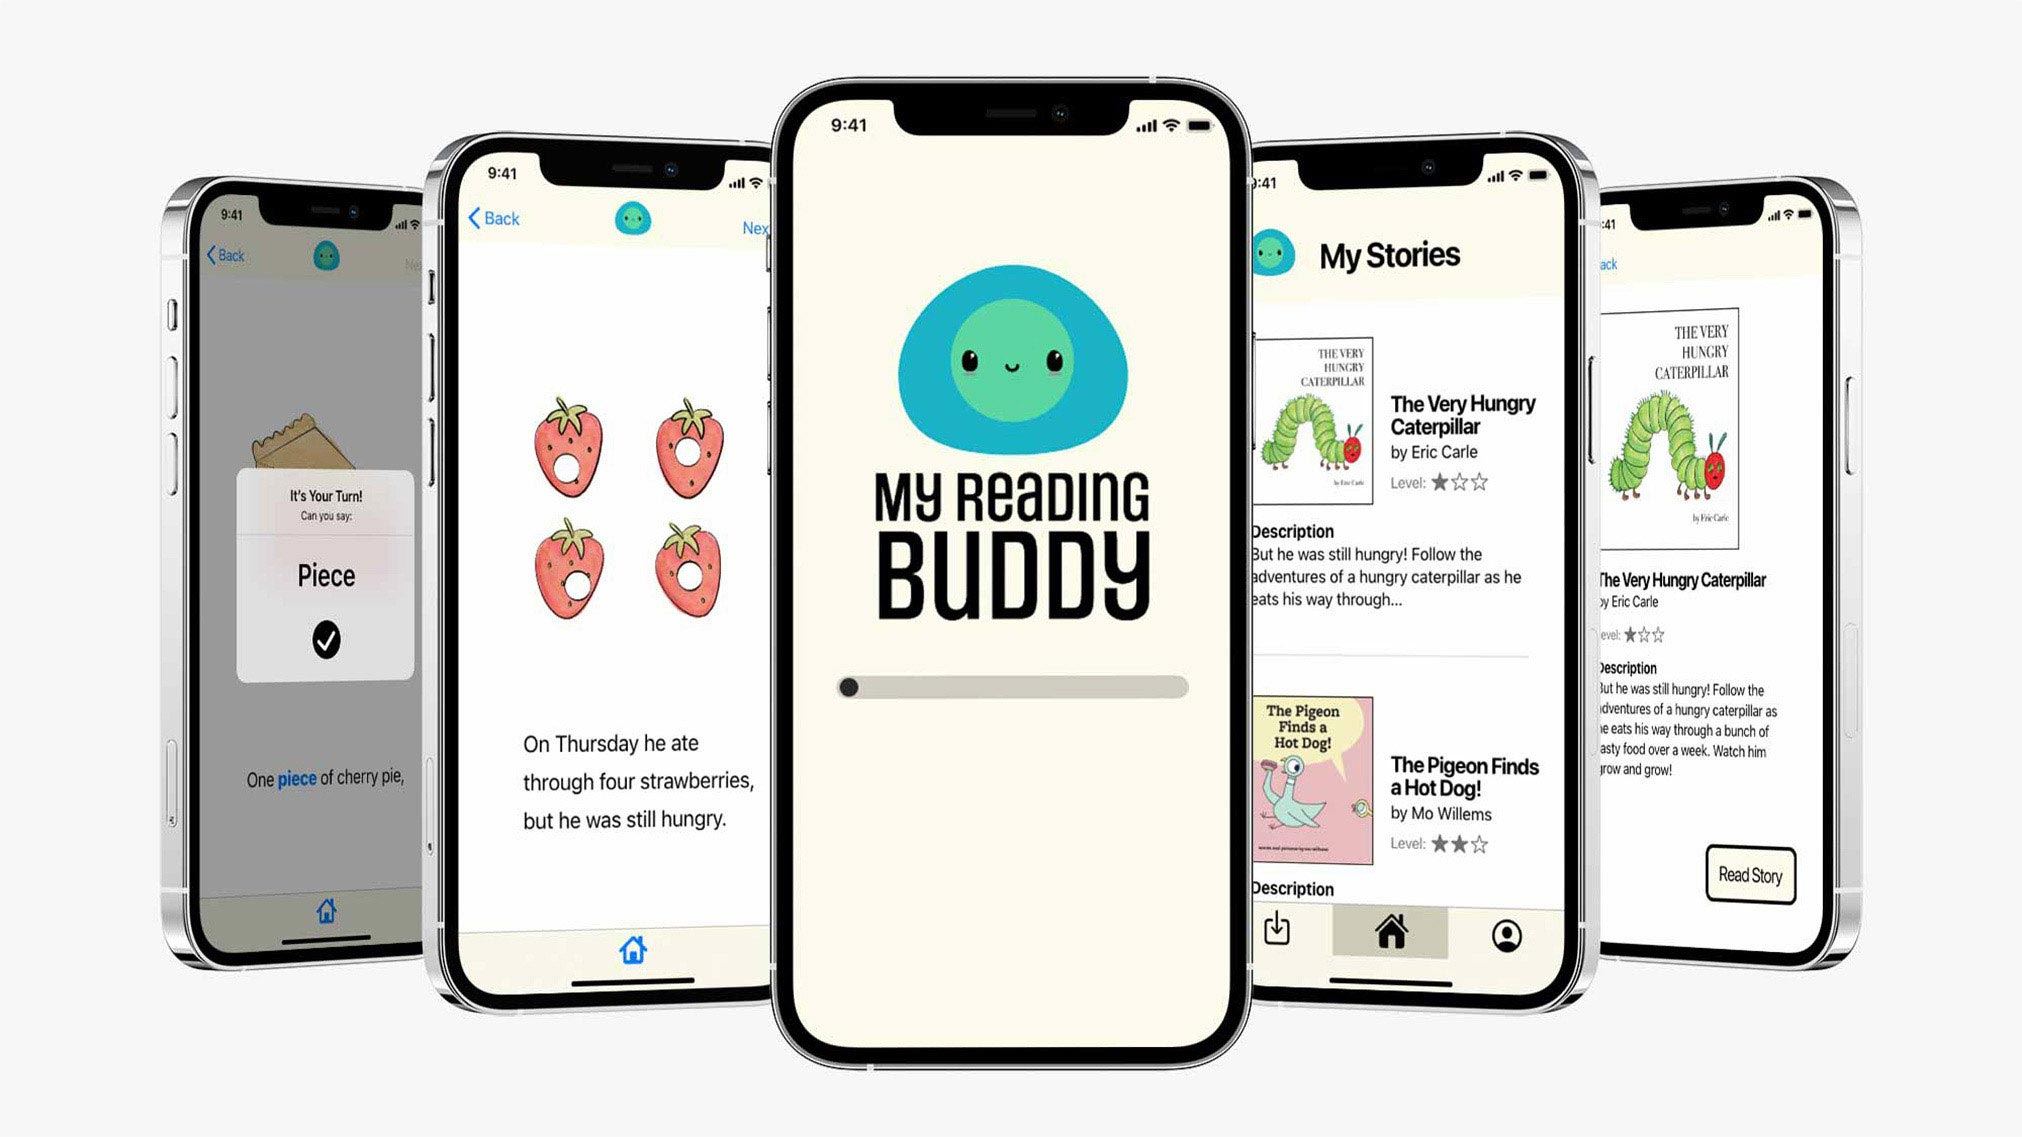 My Ready Buddy is an app to help teach literacy and numeracy through reading stories. The app includes interactive elements like repeating words to practice reading and saying words/numbers.